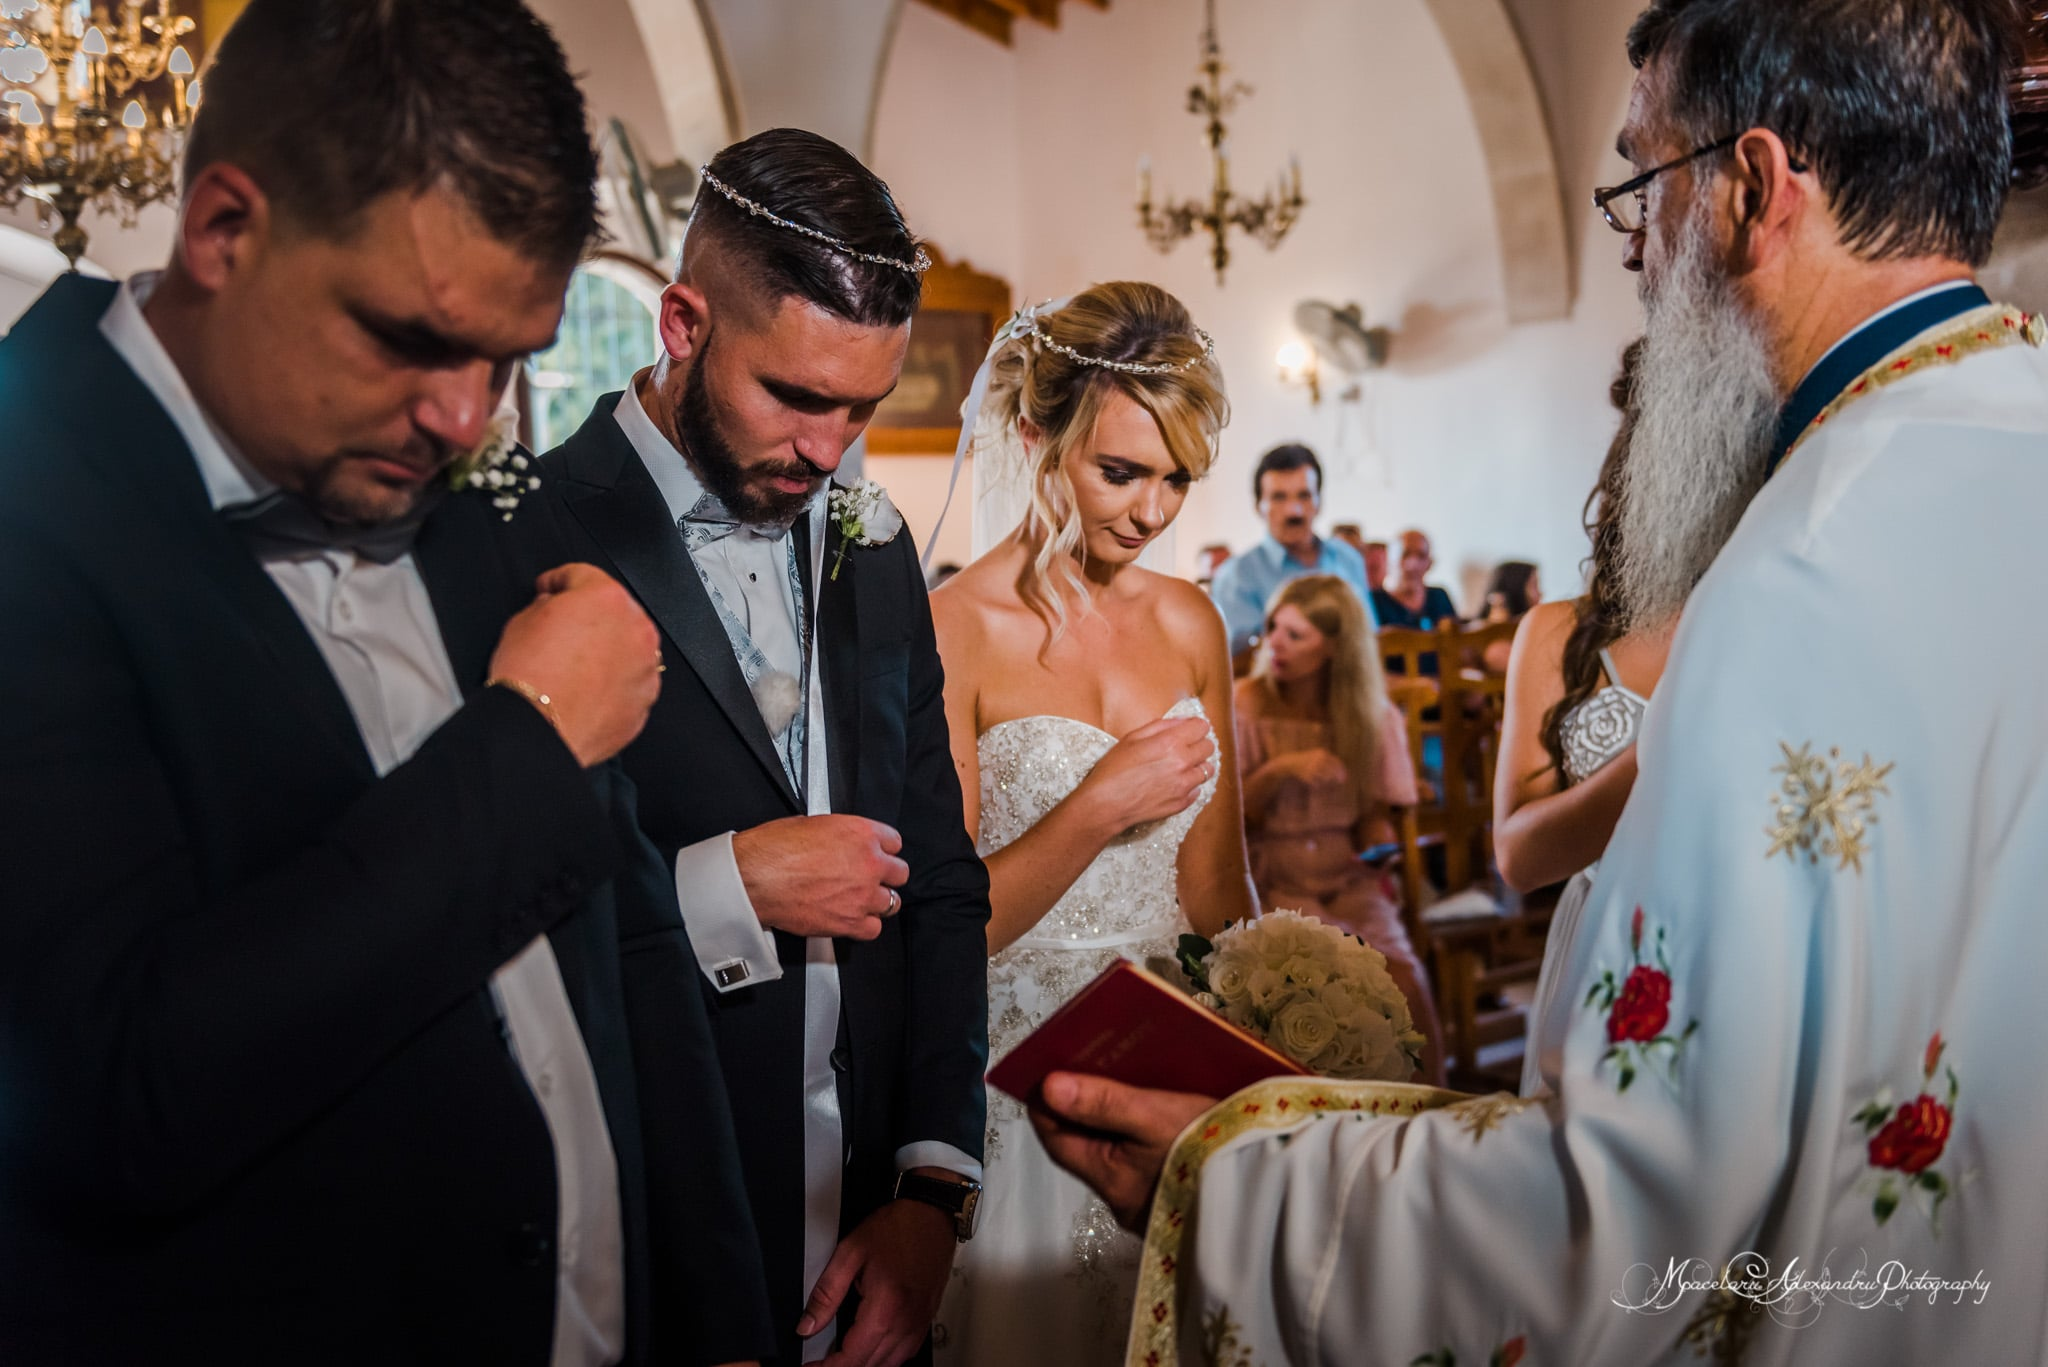 Wedding photography in Paphos - sacred moment